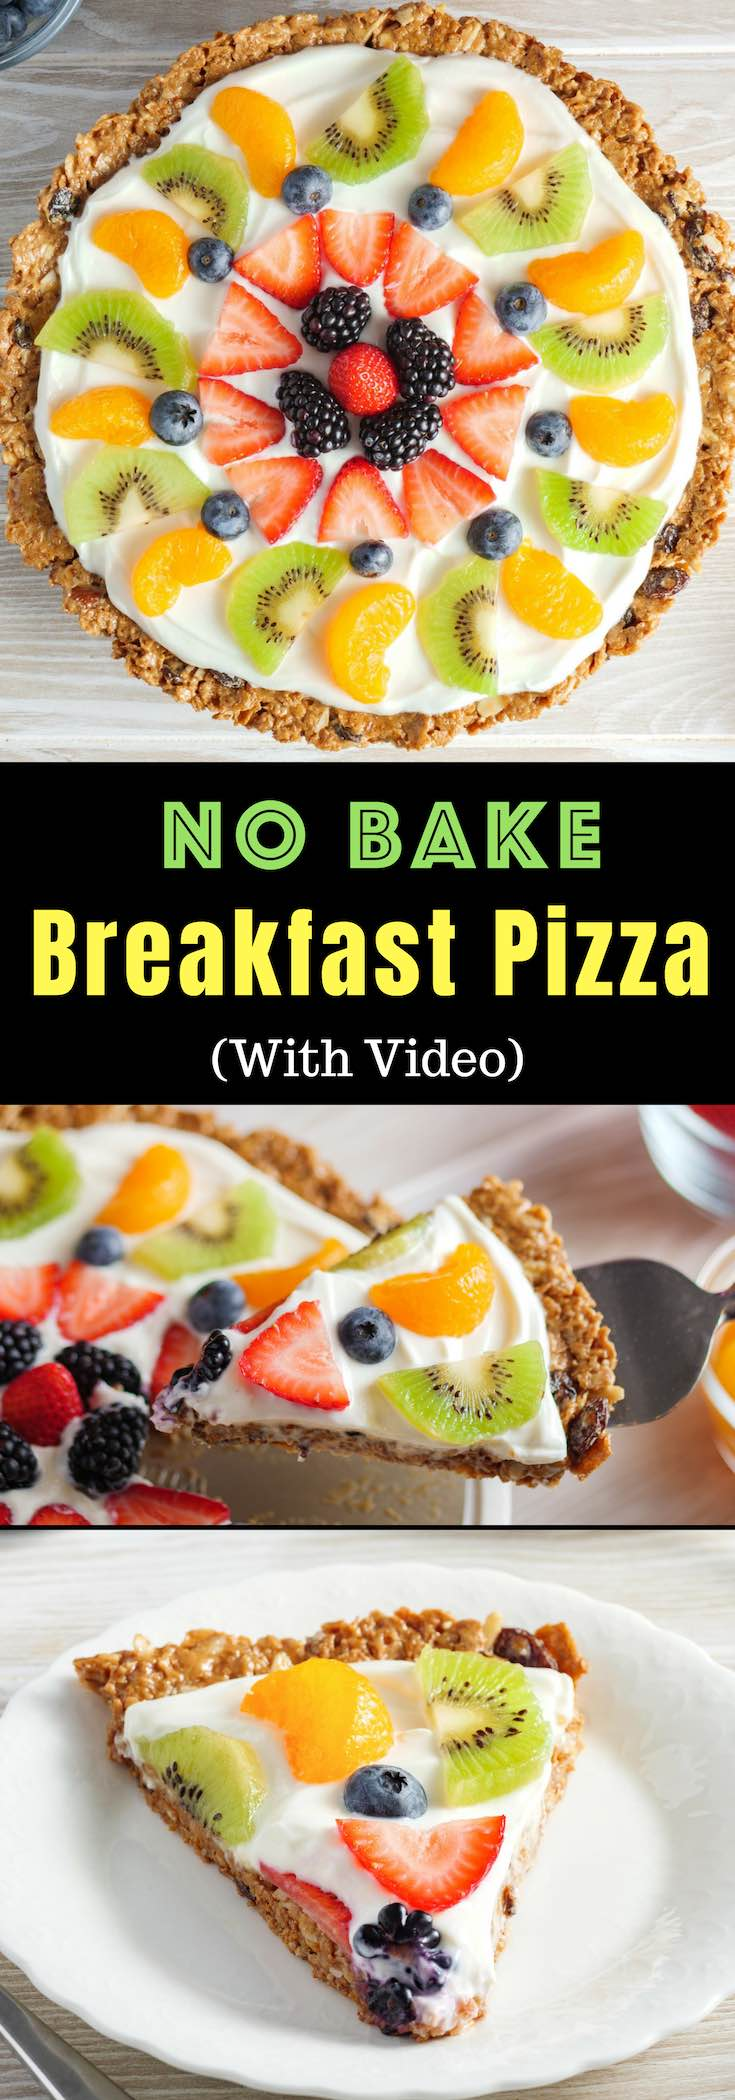 Raisin Bran Breakfast Pizza is an easy No Bake Fruit Pizza recipe for breakfast, brunch, parties and holidays made with a Kelloggs's Raisin Bran crust, fresh fruit and Greek yogurt #KelloggsCerealYourWay #ad